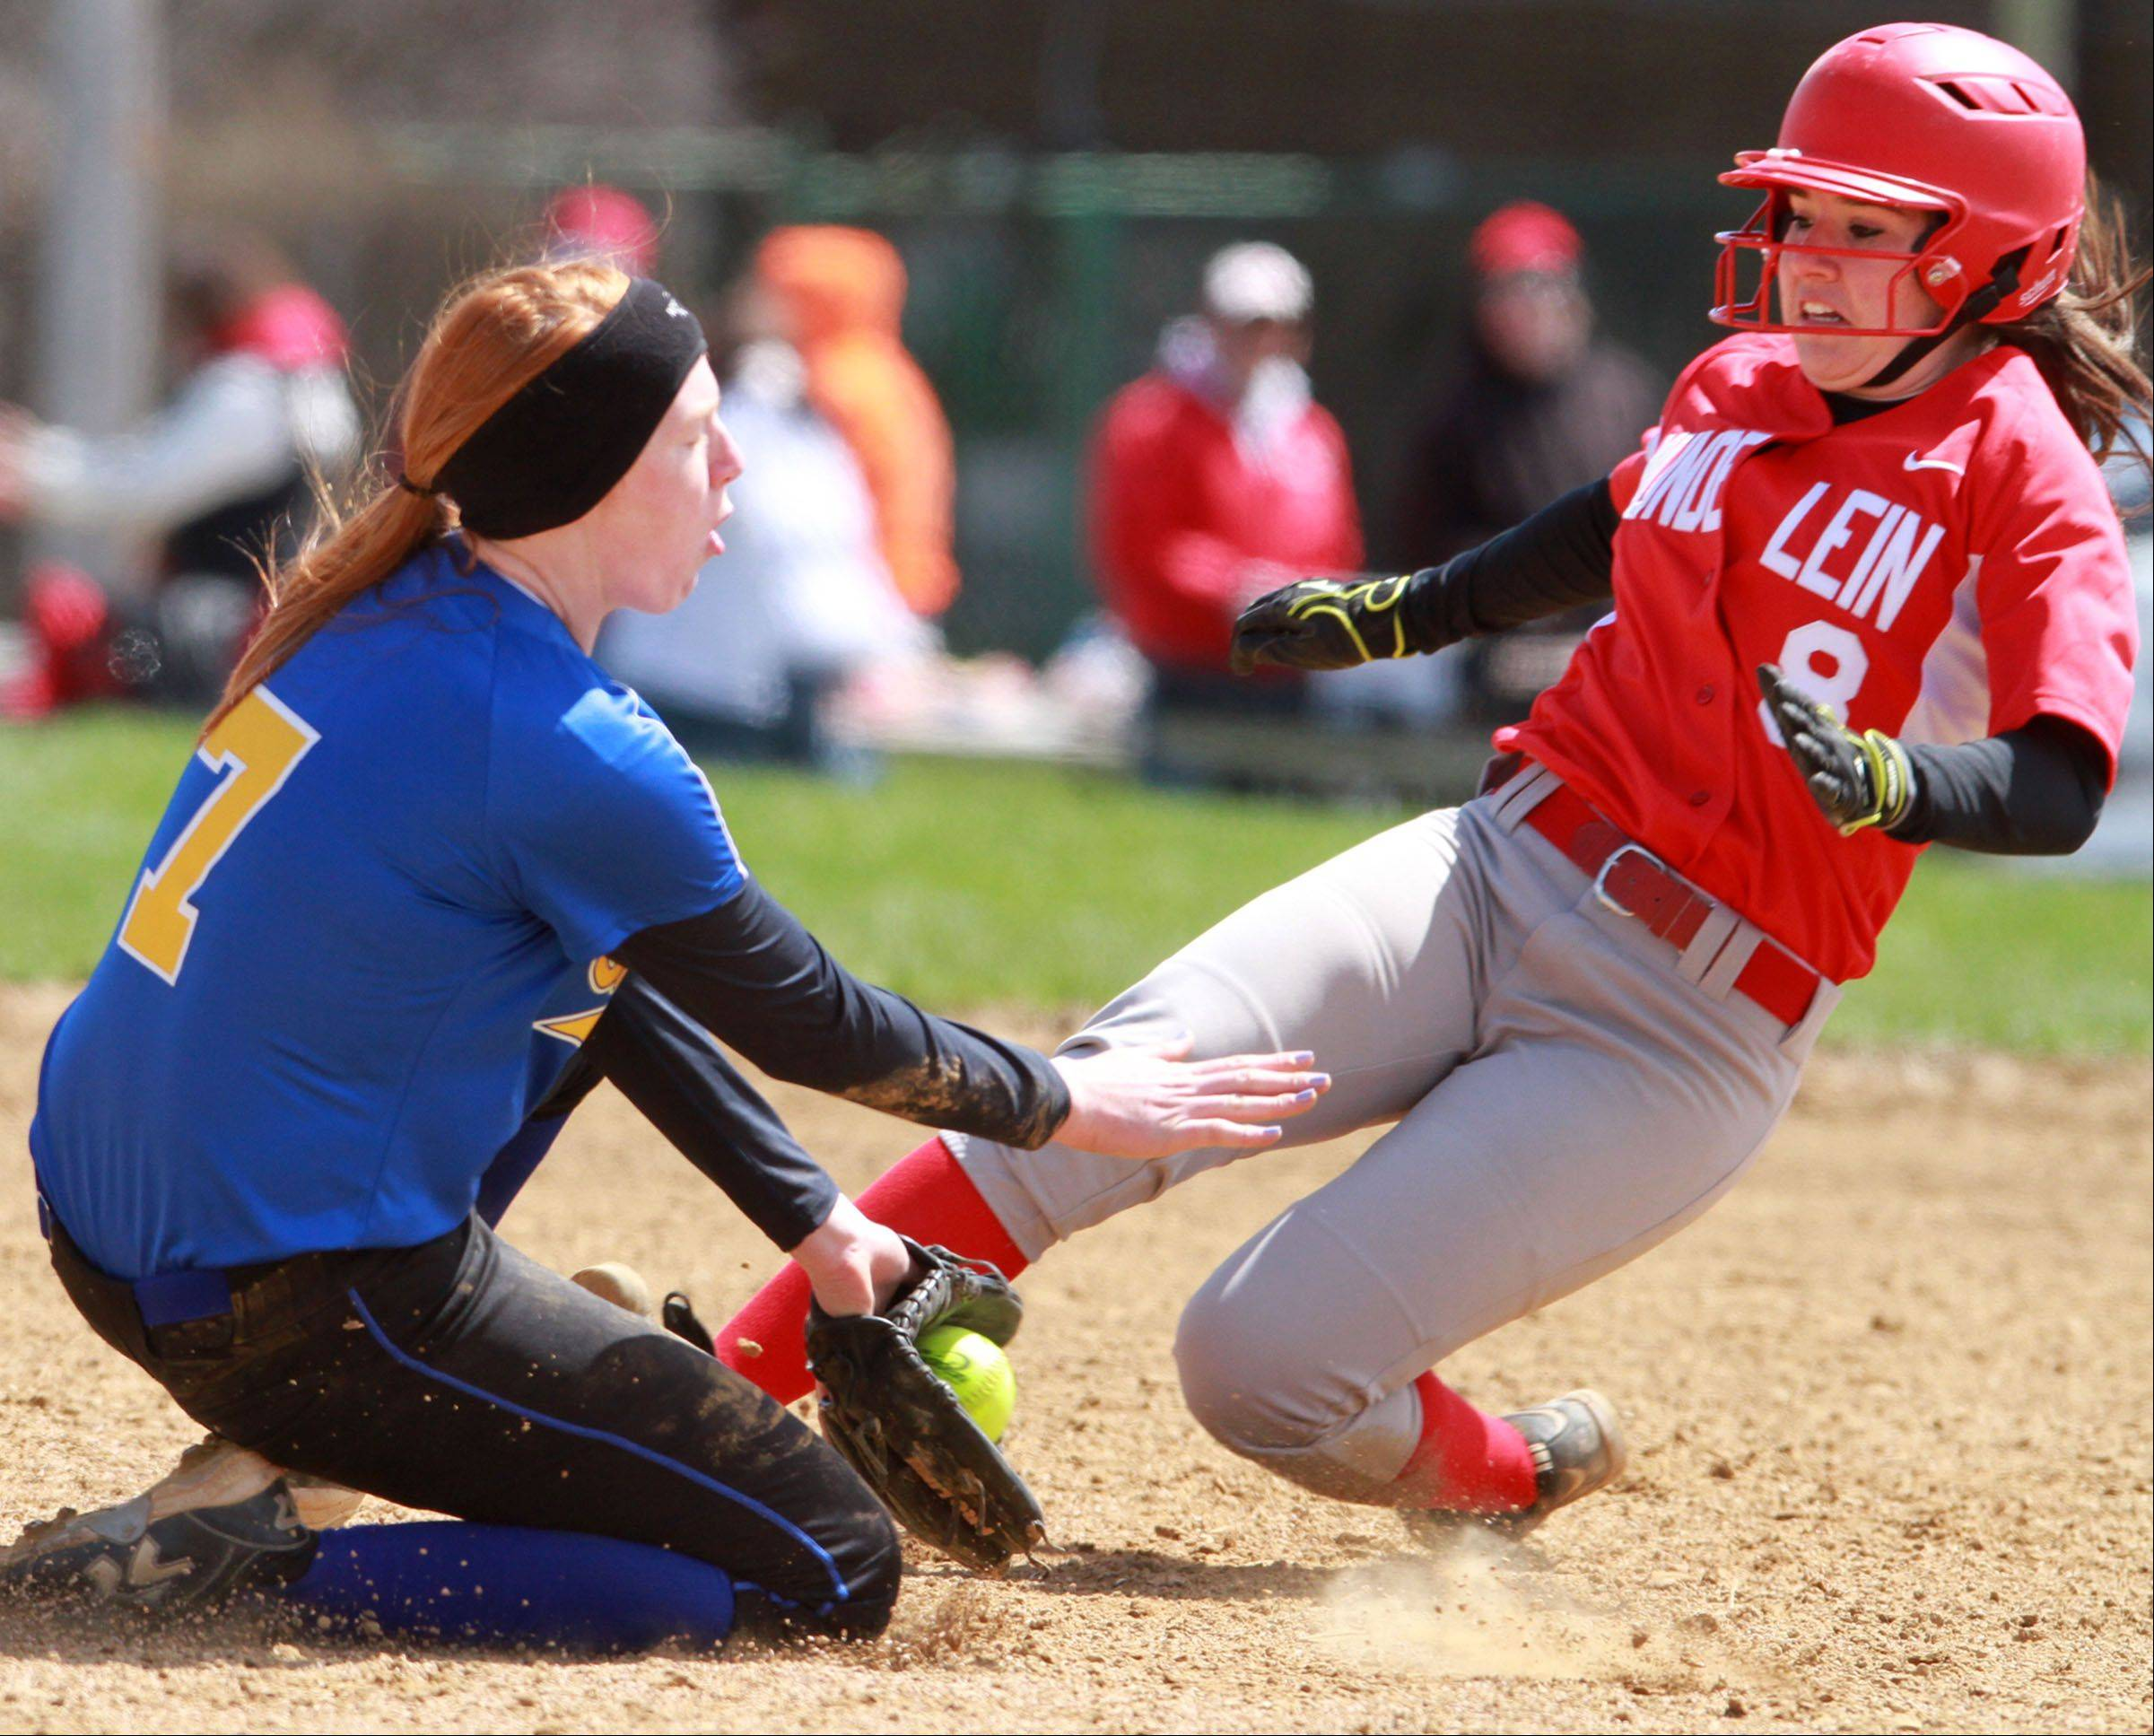 Mundelein's Maddie Zazas slides safely into second base past Johnsburg's Carly Wilson at Mundelein on Saturday.